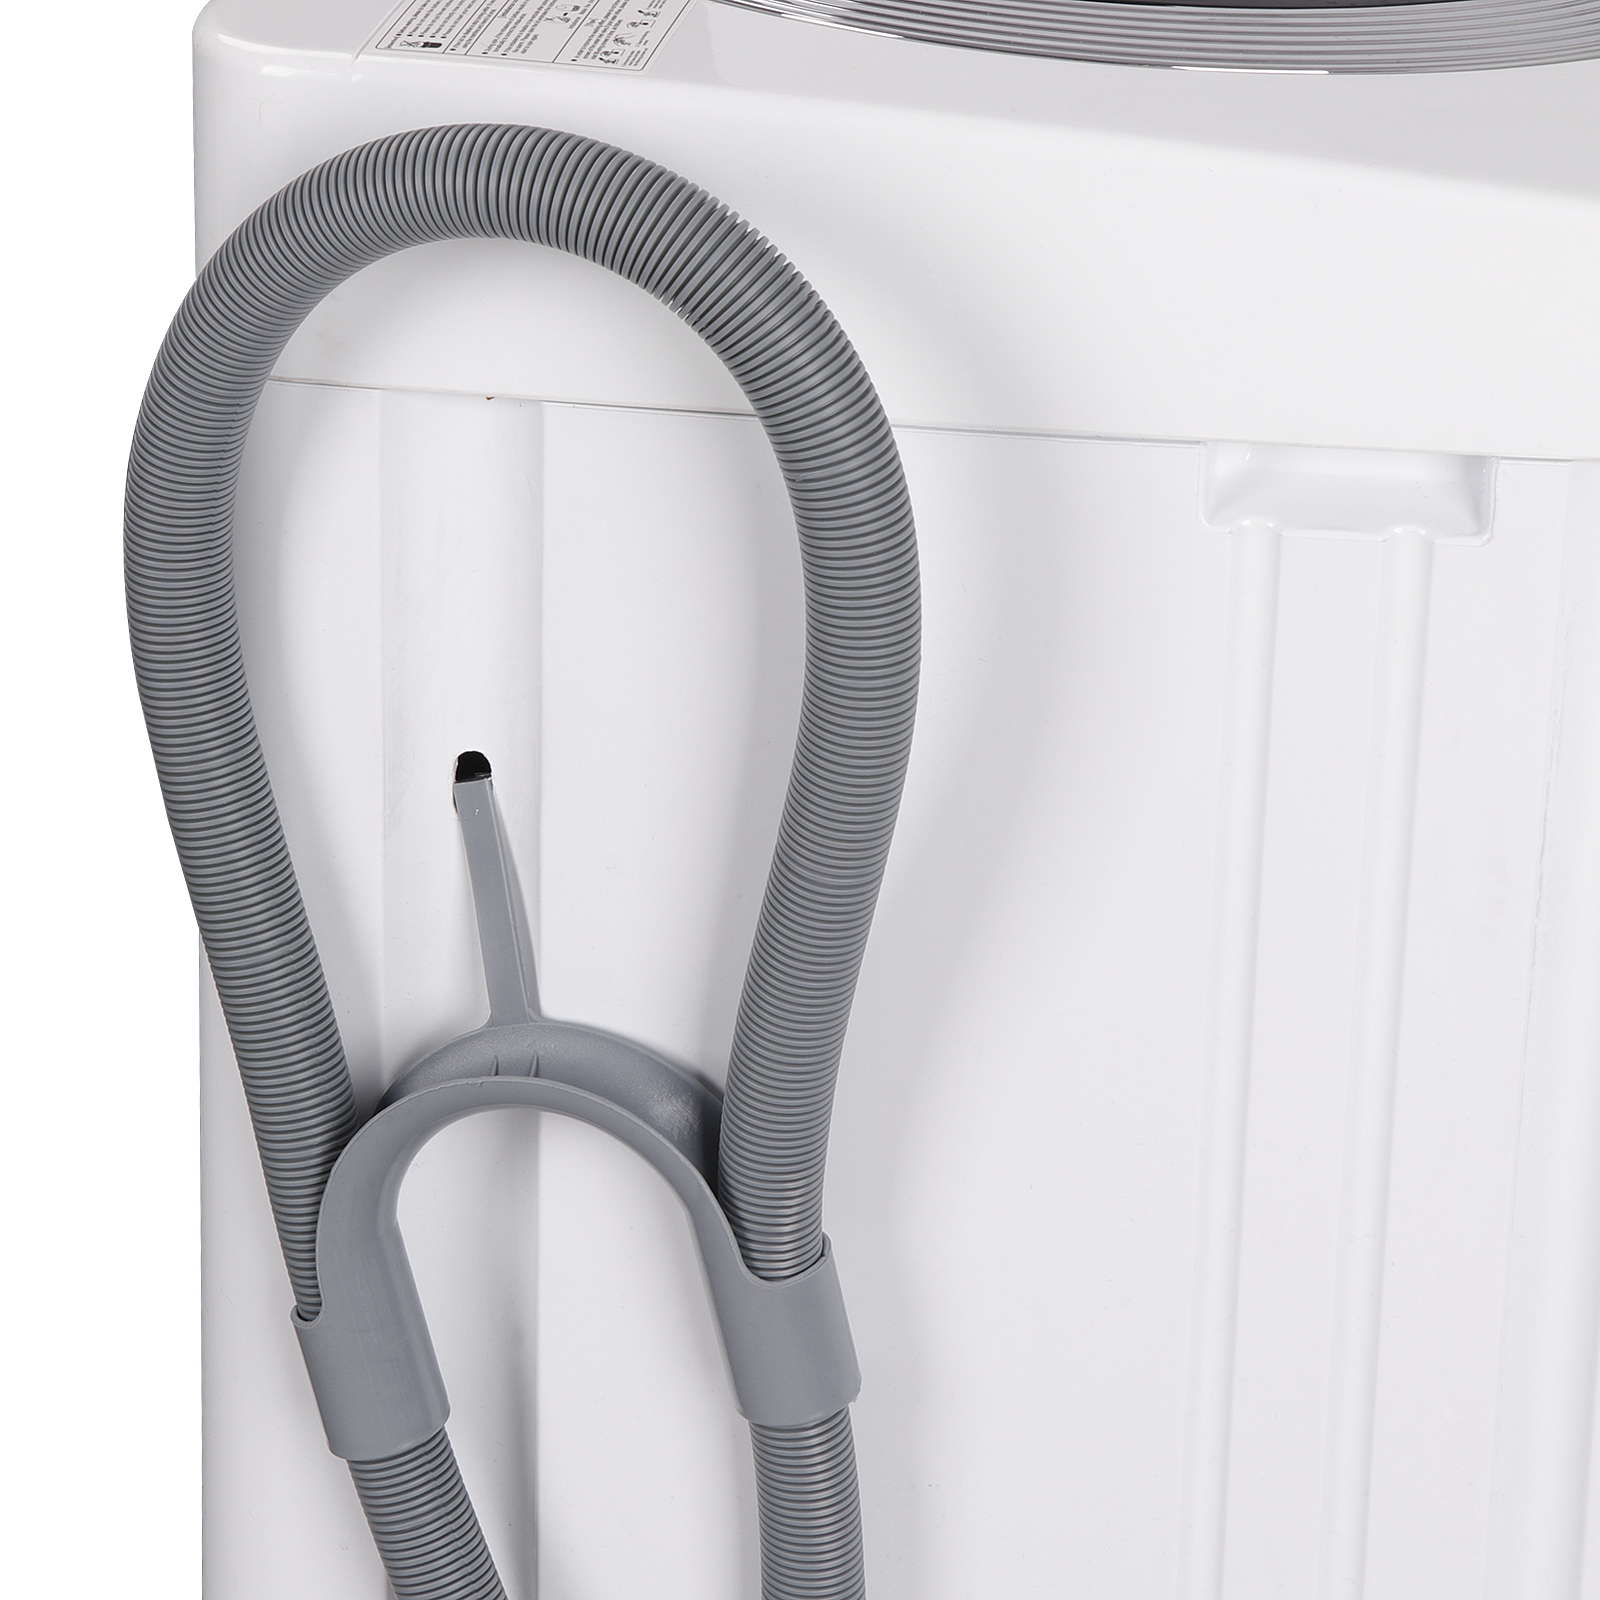 Zeny Portable Full-Automatic Washing Machine 1 6 Cu  ft  Spacious Load 2in1  Washer&Spinner w/Drain Pump and Long Hose